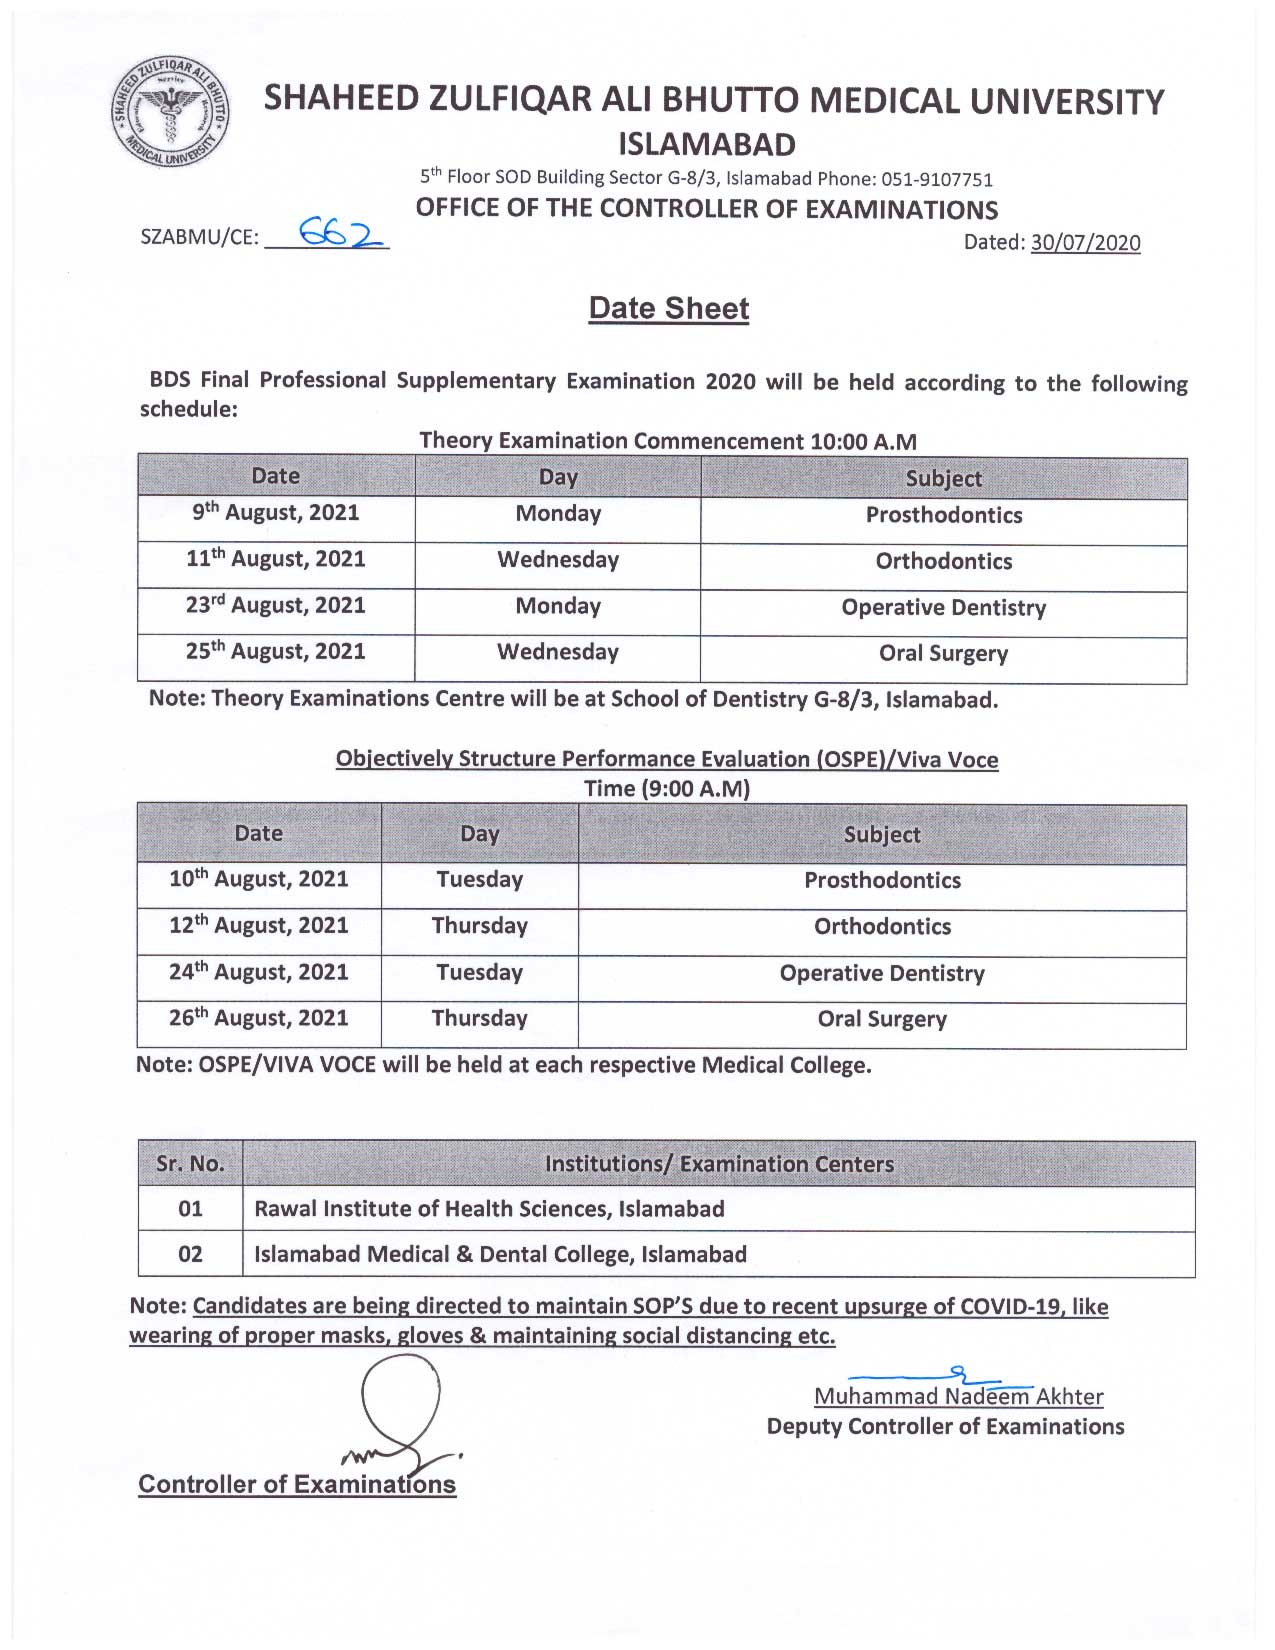 Date Sheet - BDS Final Professional Supplementary Examination 2020